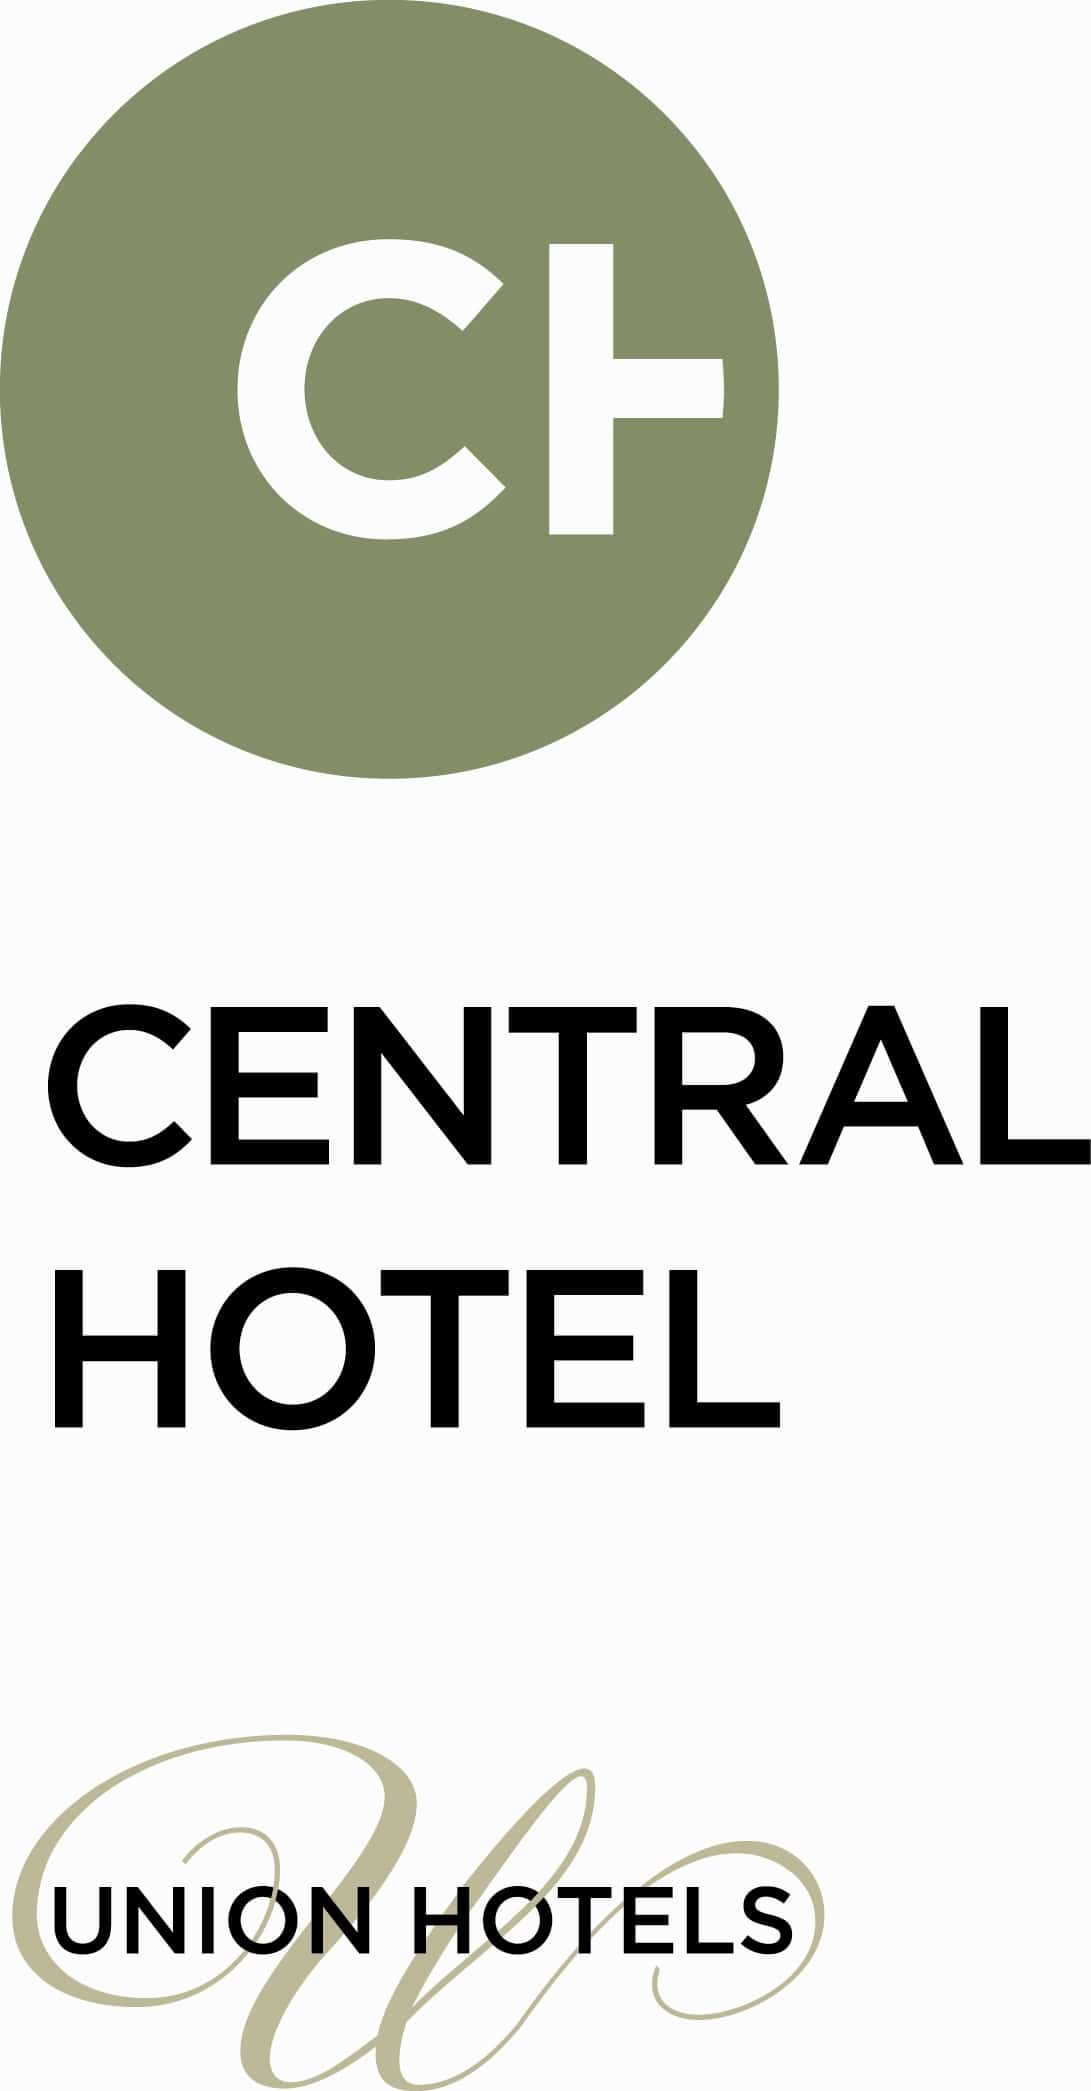 CENTRAL HOTEL, UNION HOTELS Image